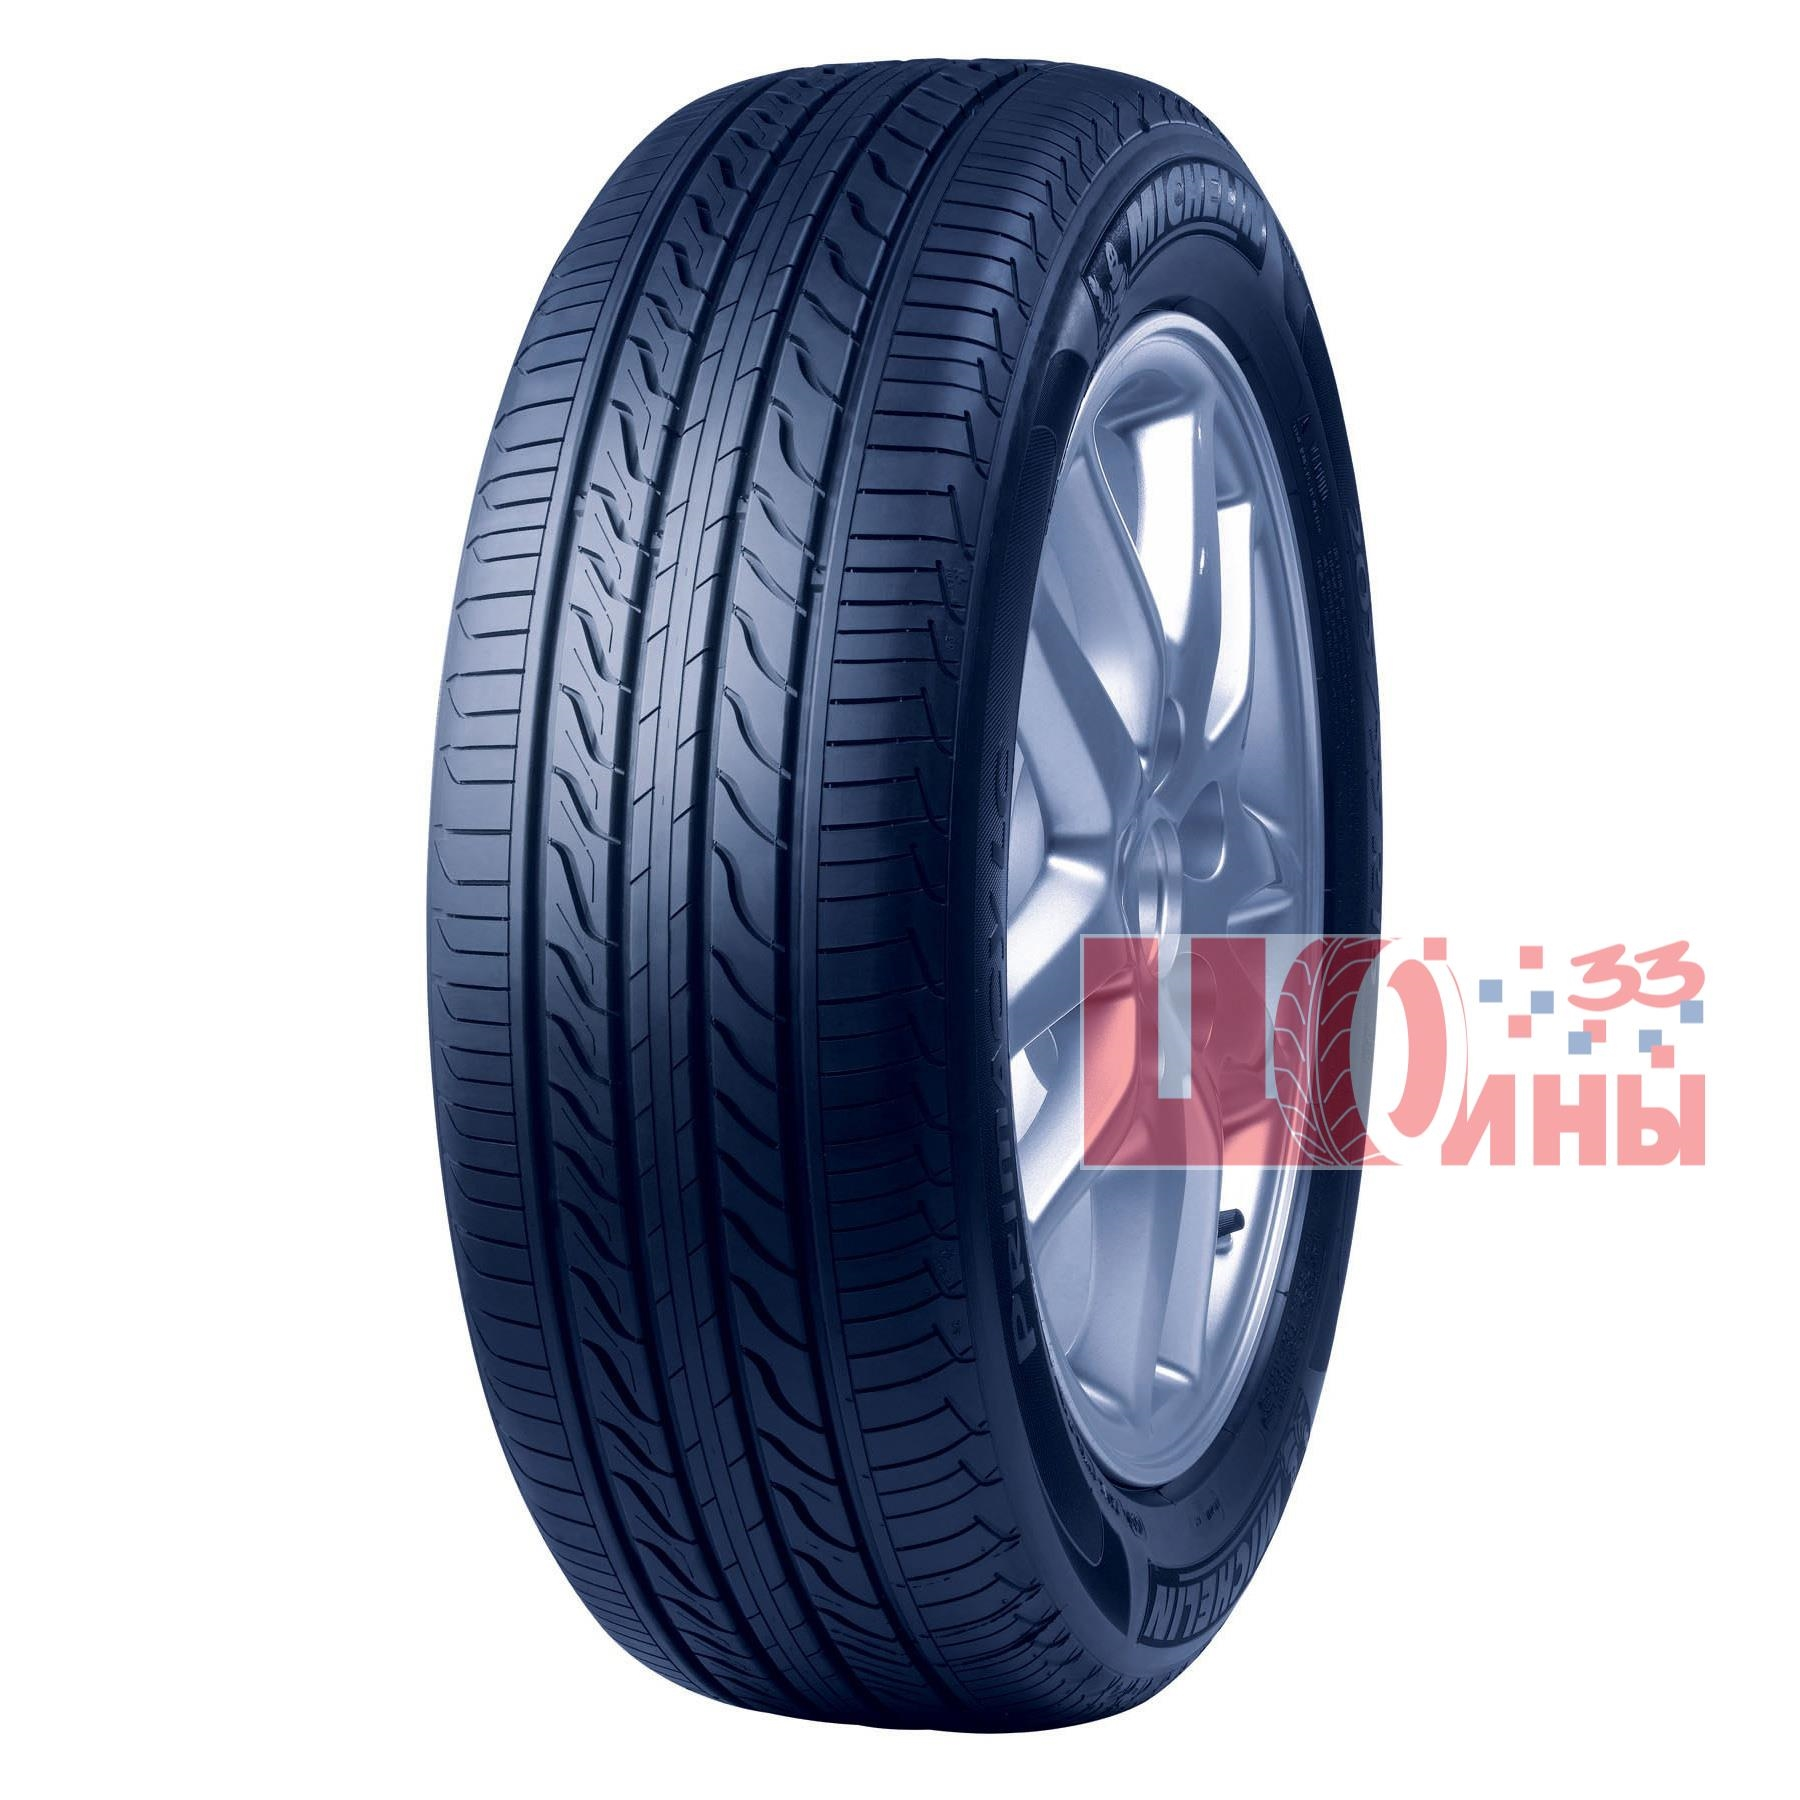 Б/У 215/55 R17 Лето MICHELIN Primacy LC Кат. 4